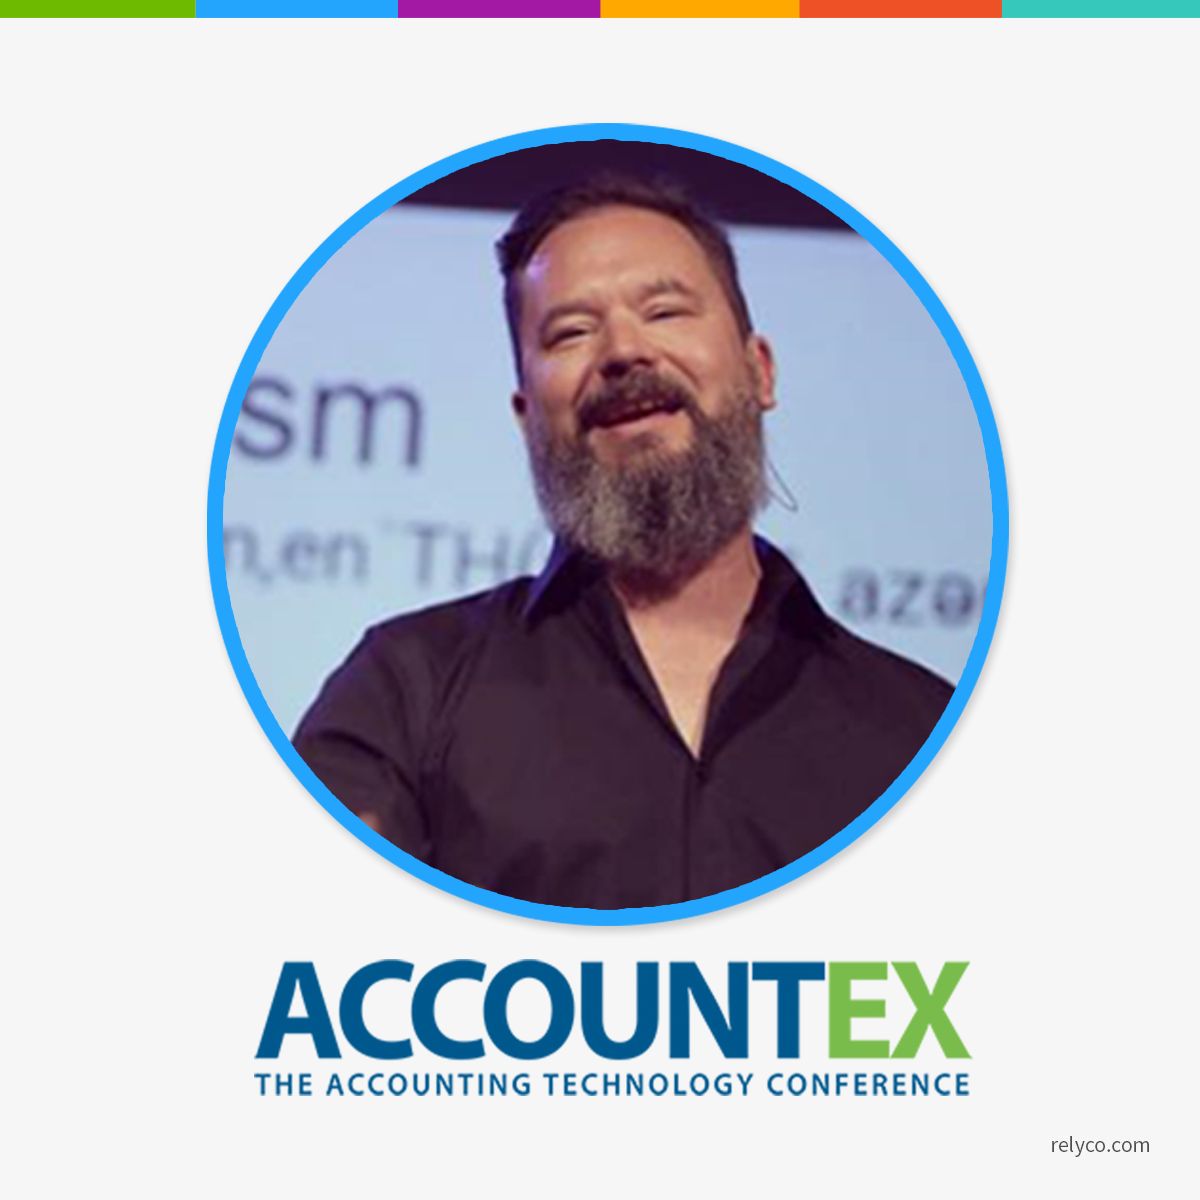 Relyco Will Host Chris Elmore At The Company's Accountex Booth